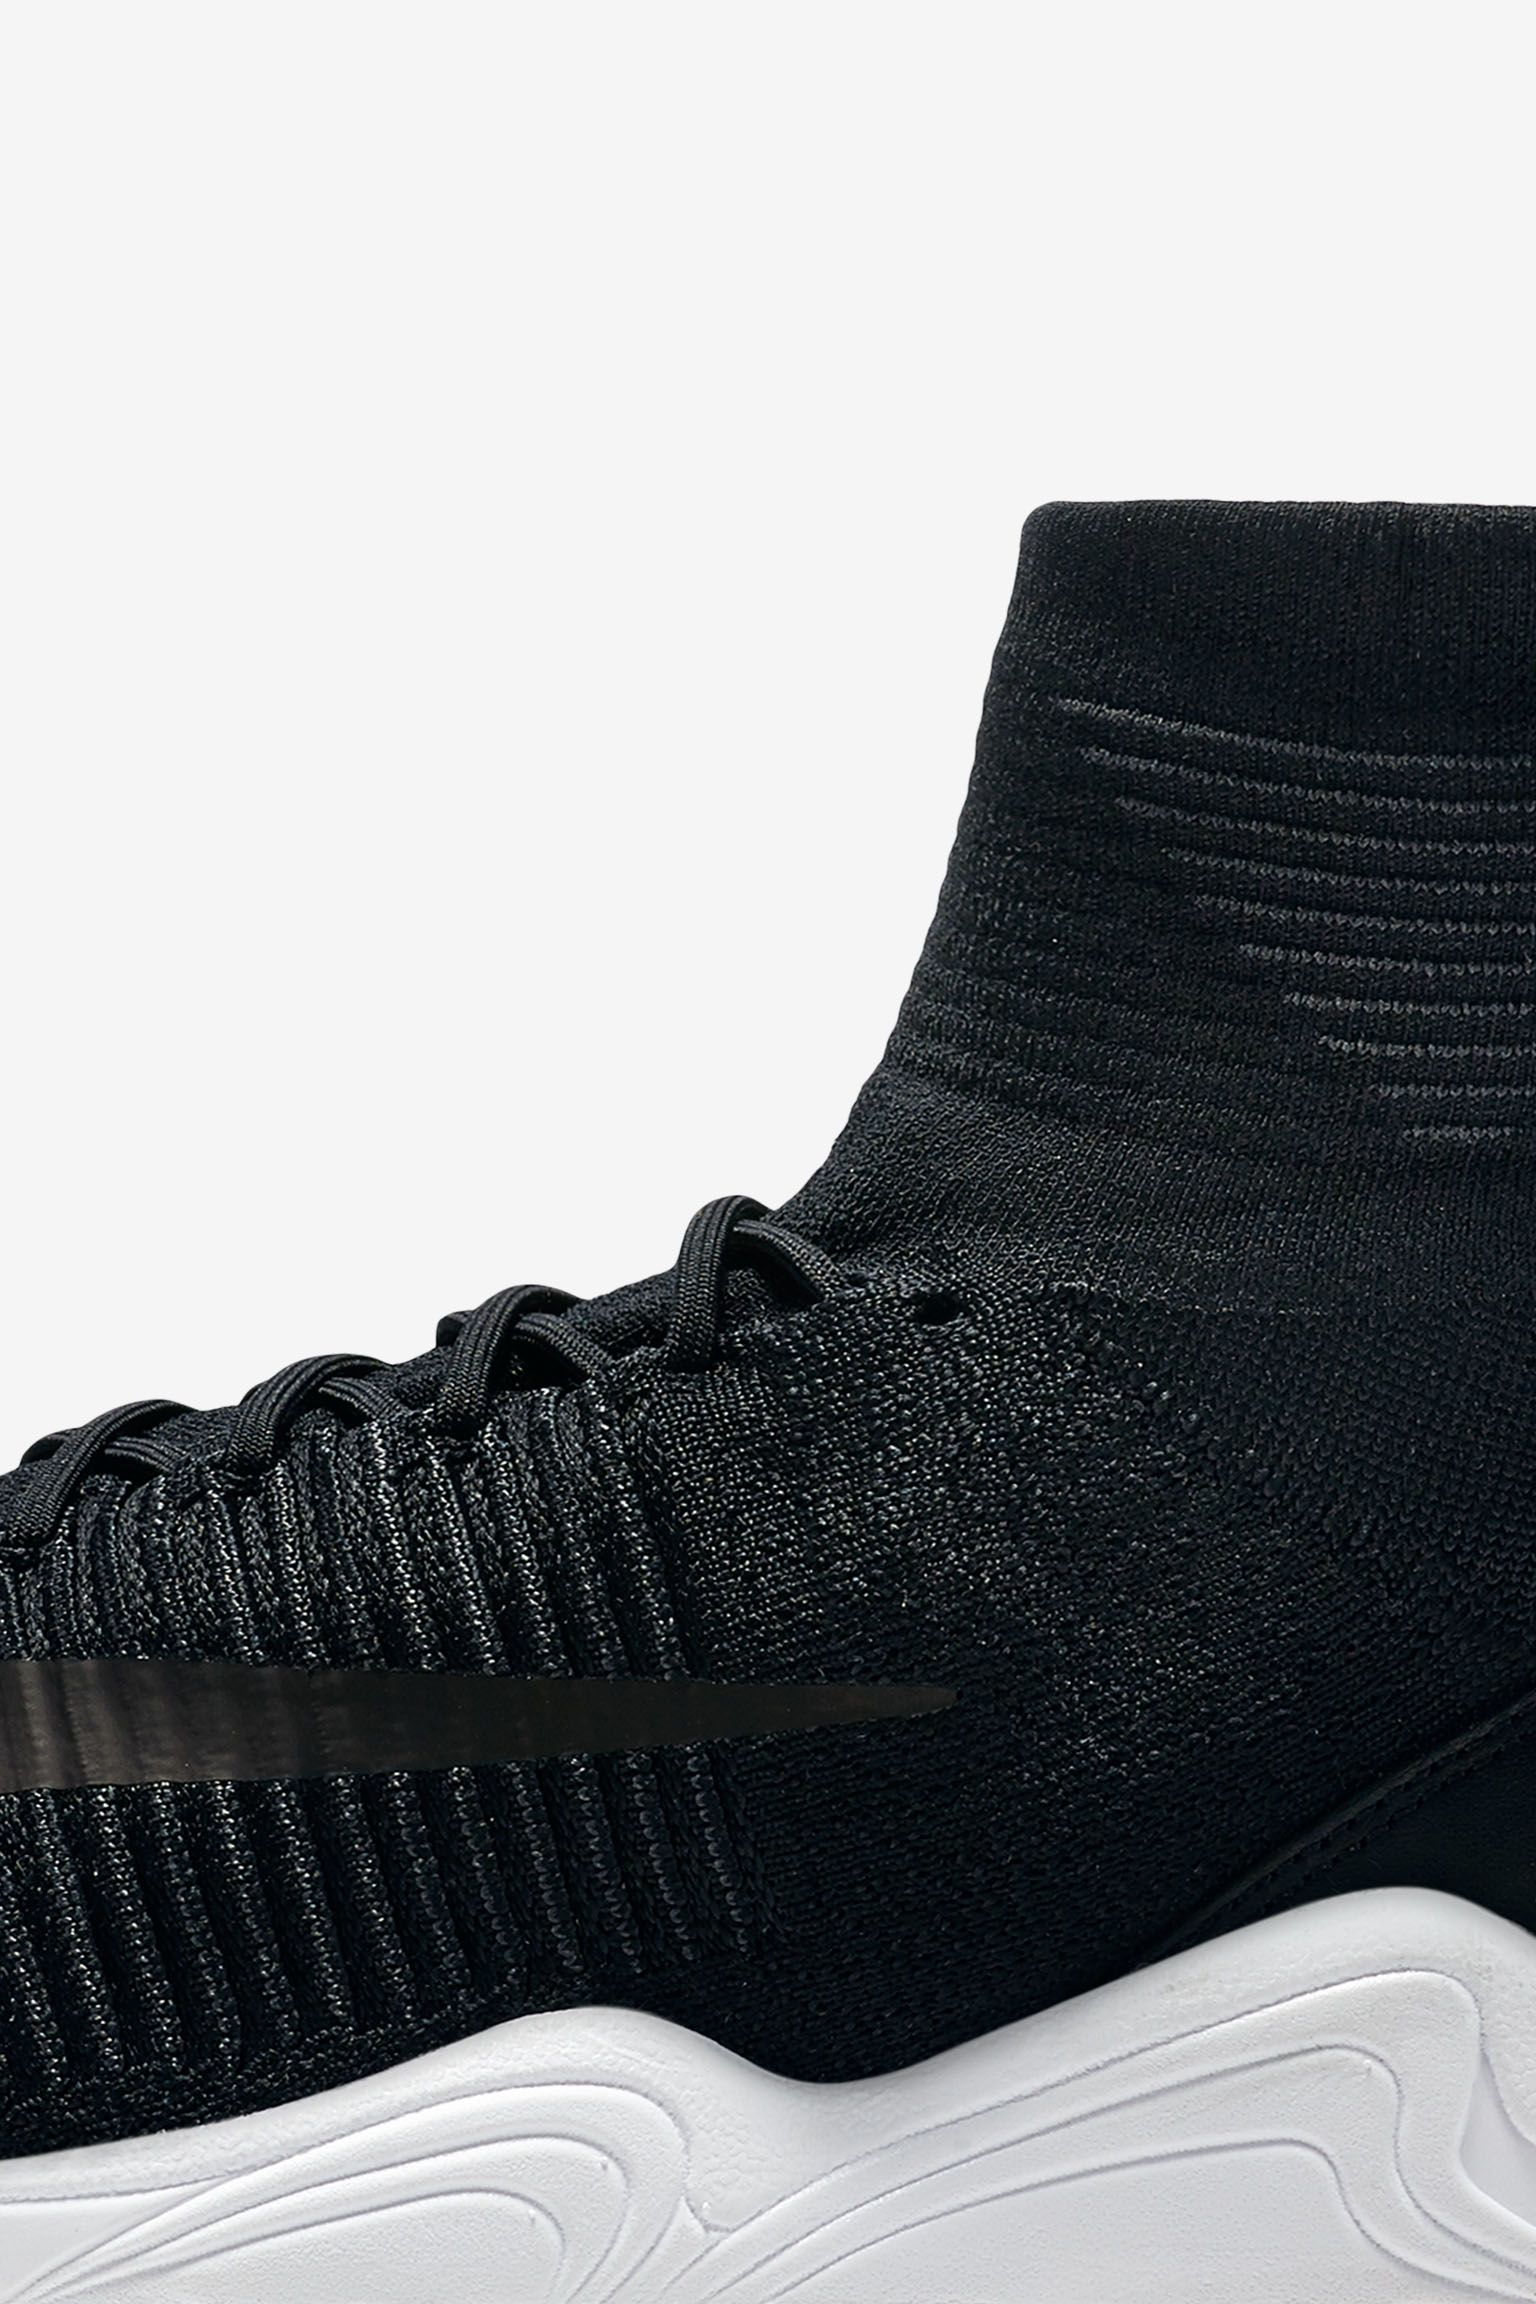 Nike Zoom Mercurial 11 Flyknit 'Black & White'